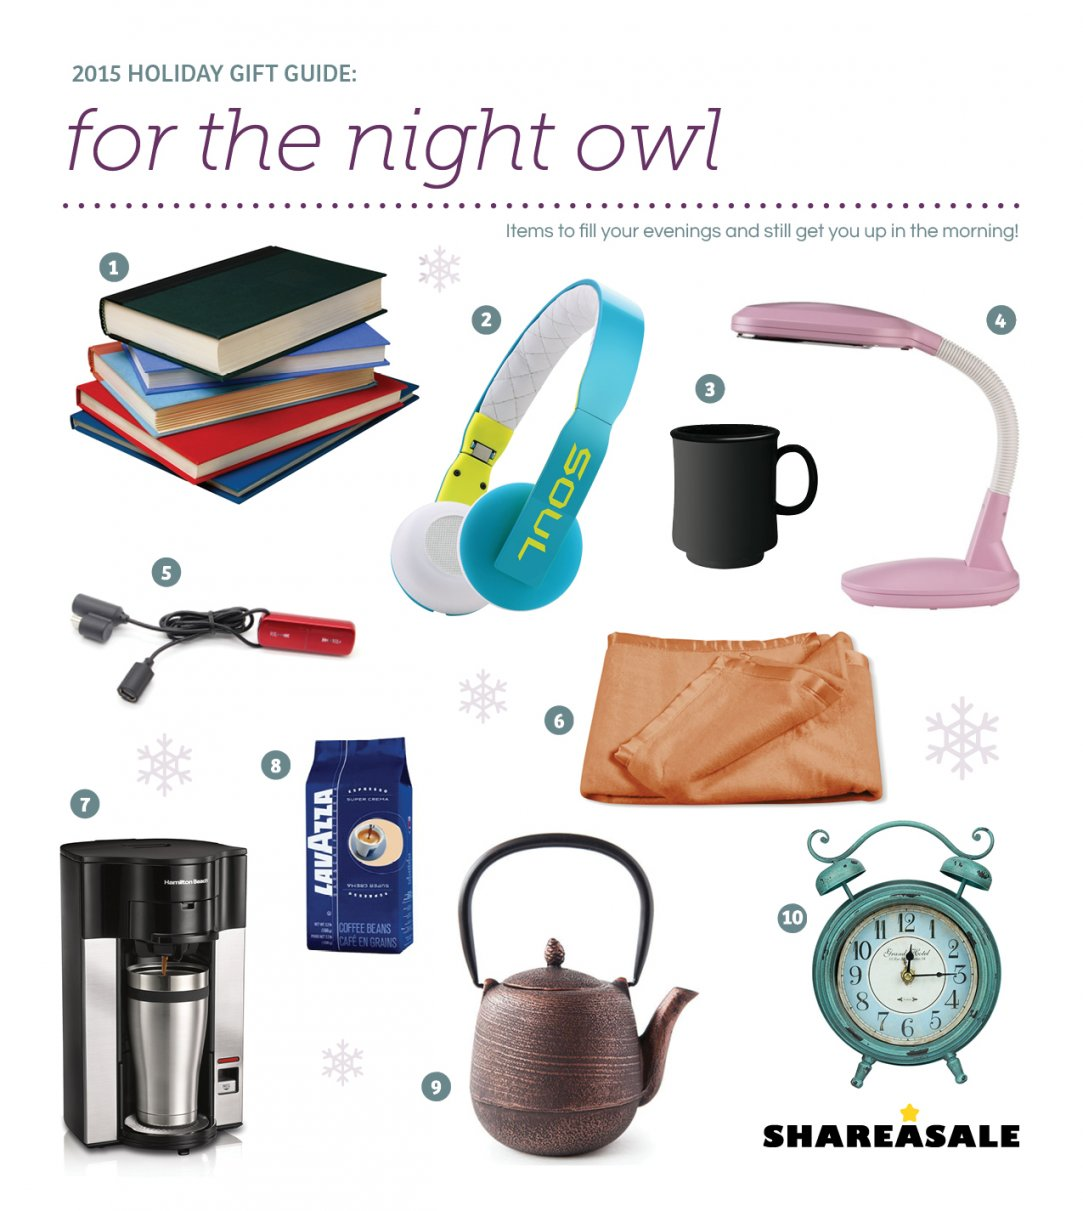 GiftGuides: Gifts for the Night Owl - ShareASale Blog